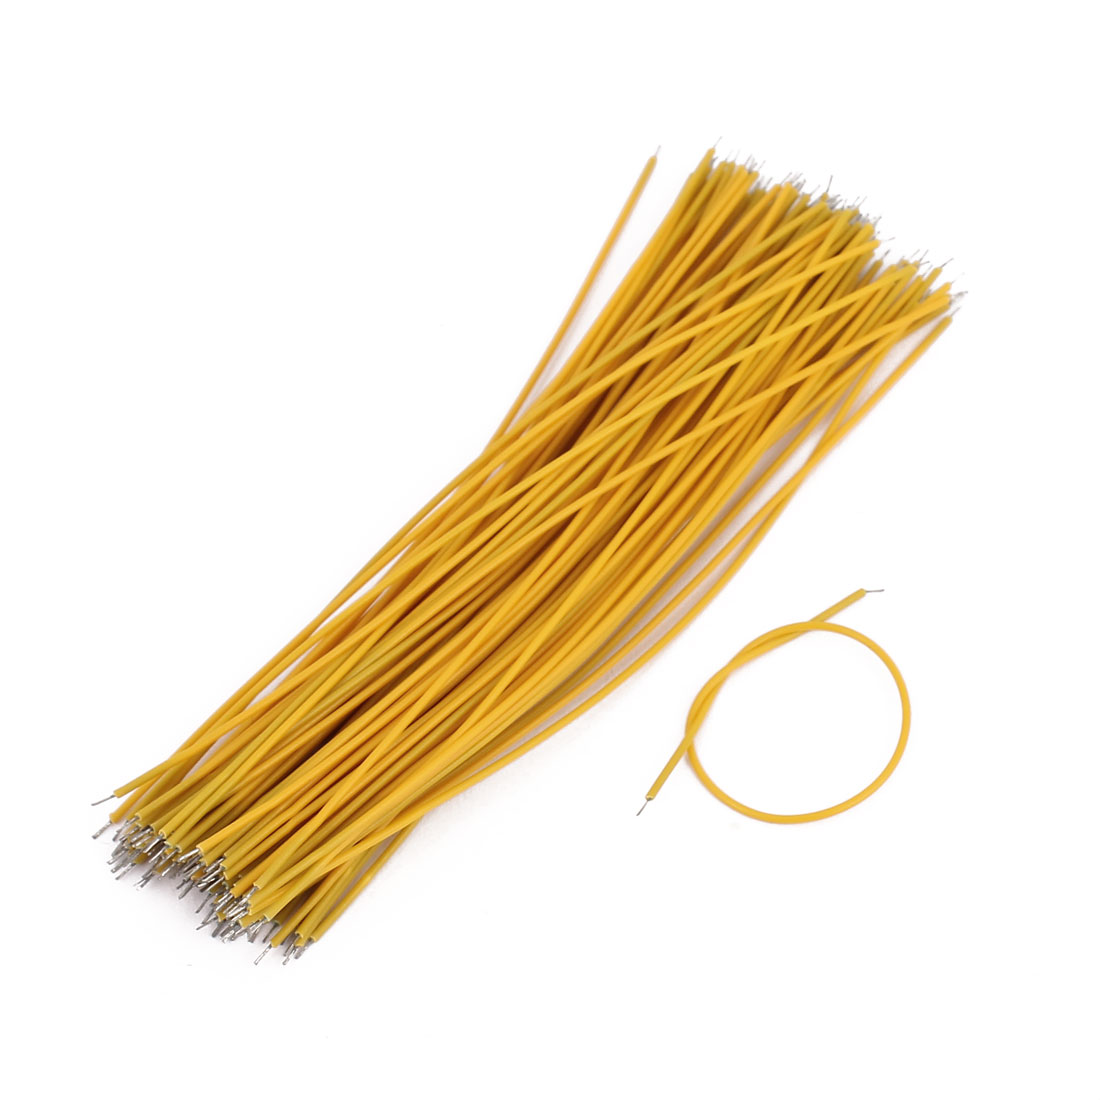 0.7mm x 100mm Dual Head Electric Insulated Flexible PVC Wire Cable Yellow 100Pcs